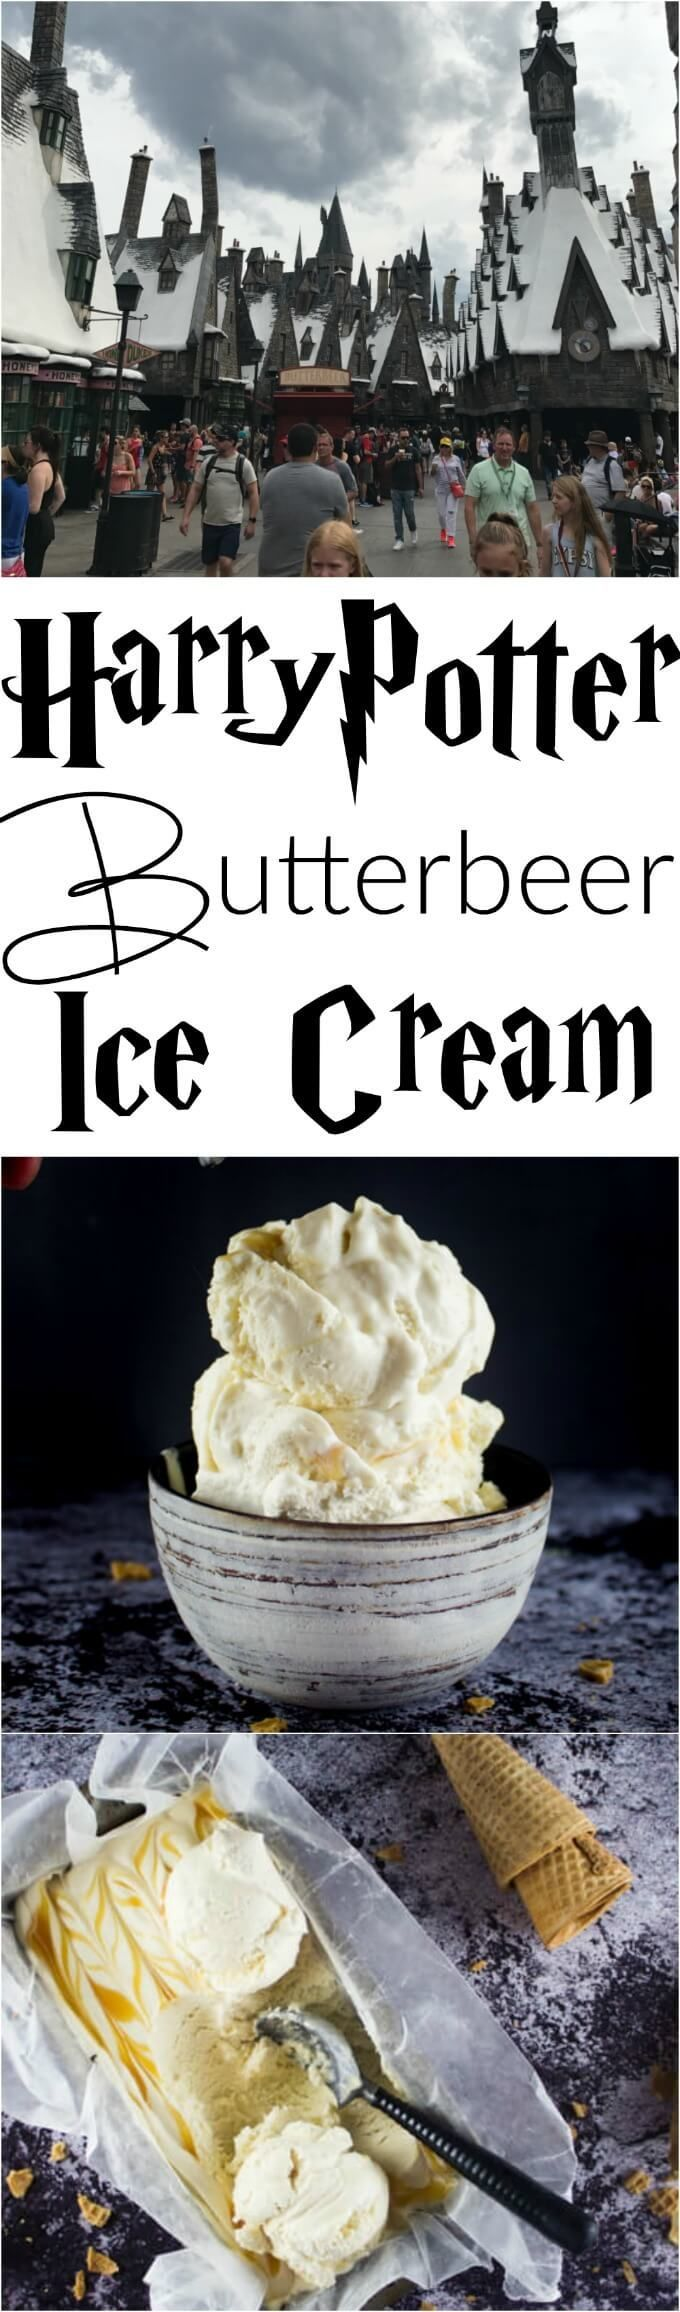 Satisfy your sweet tooth this summer with some homemade Butterbeer ice cream!(Summer Baking Treats)